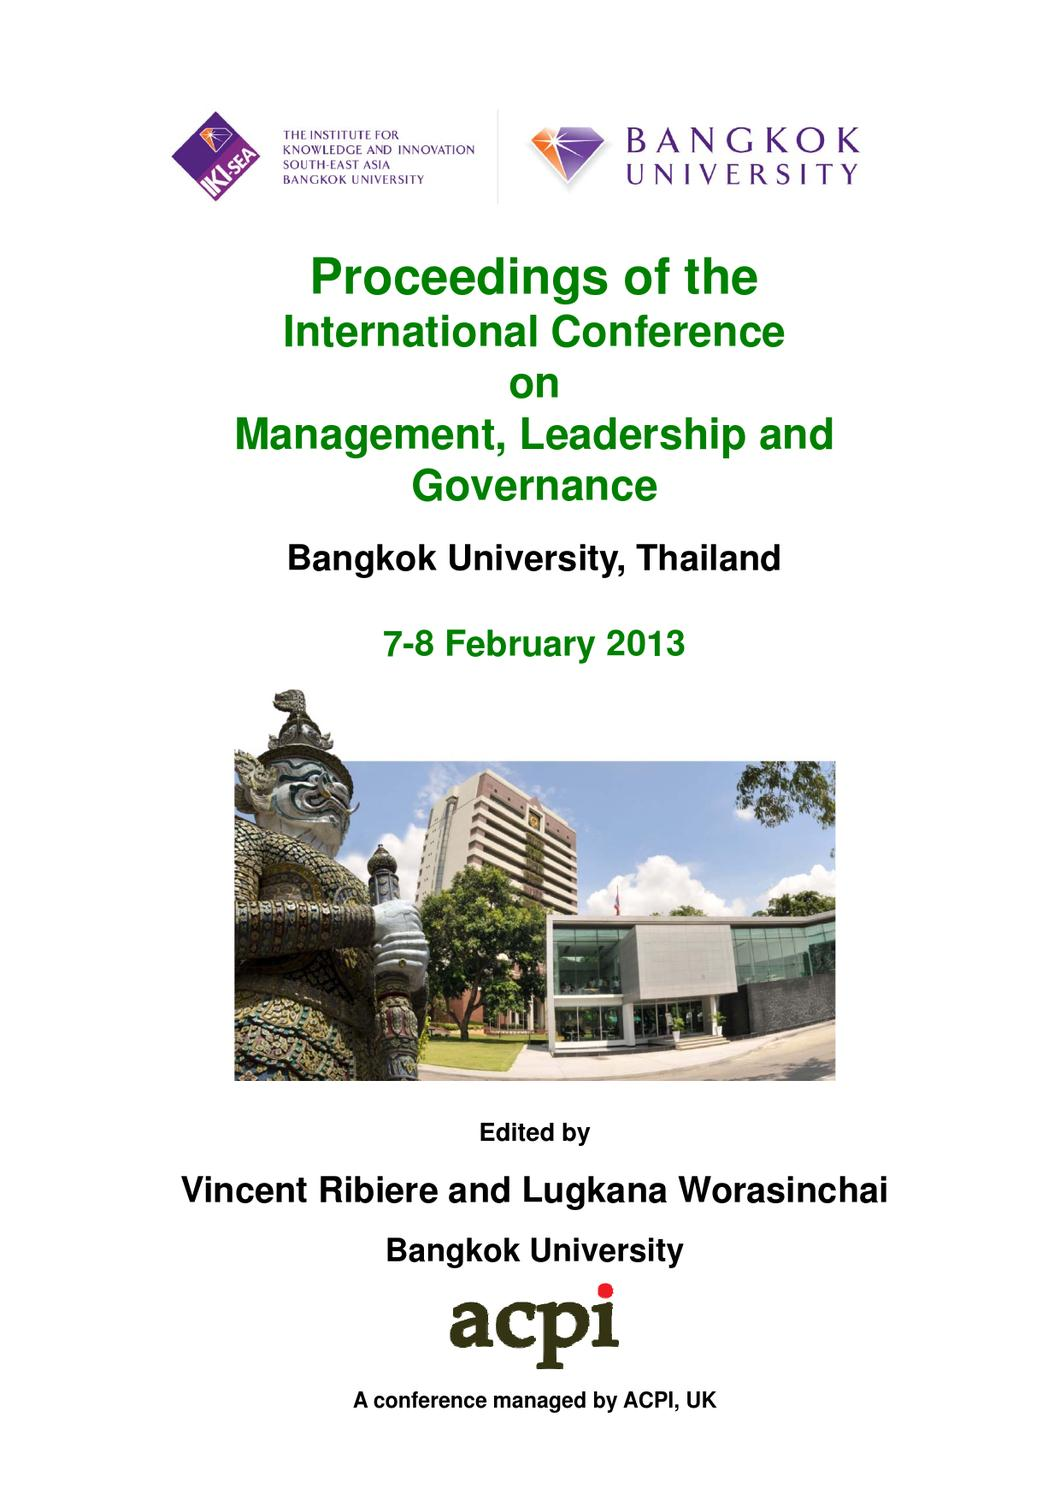 Icmlg 2013 proceedings of the international conference on management icmlg 2013 proceedings of the international conference on management leadership and governance by acpil issuu fandeluxe Gallery